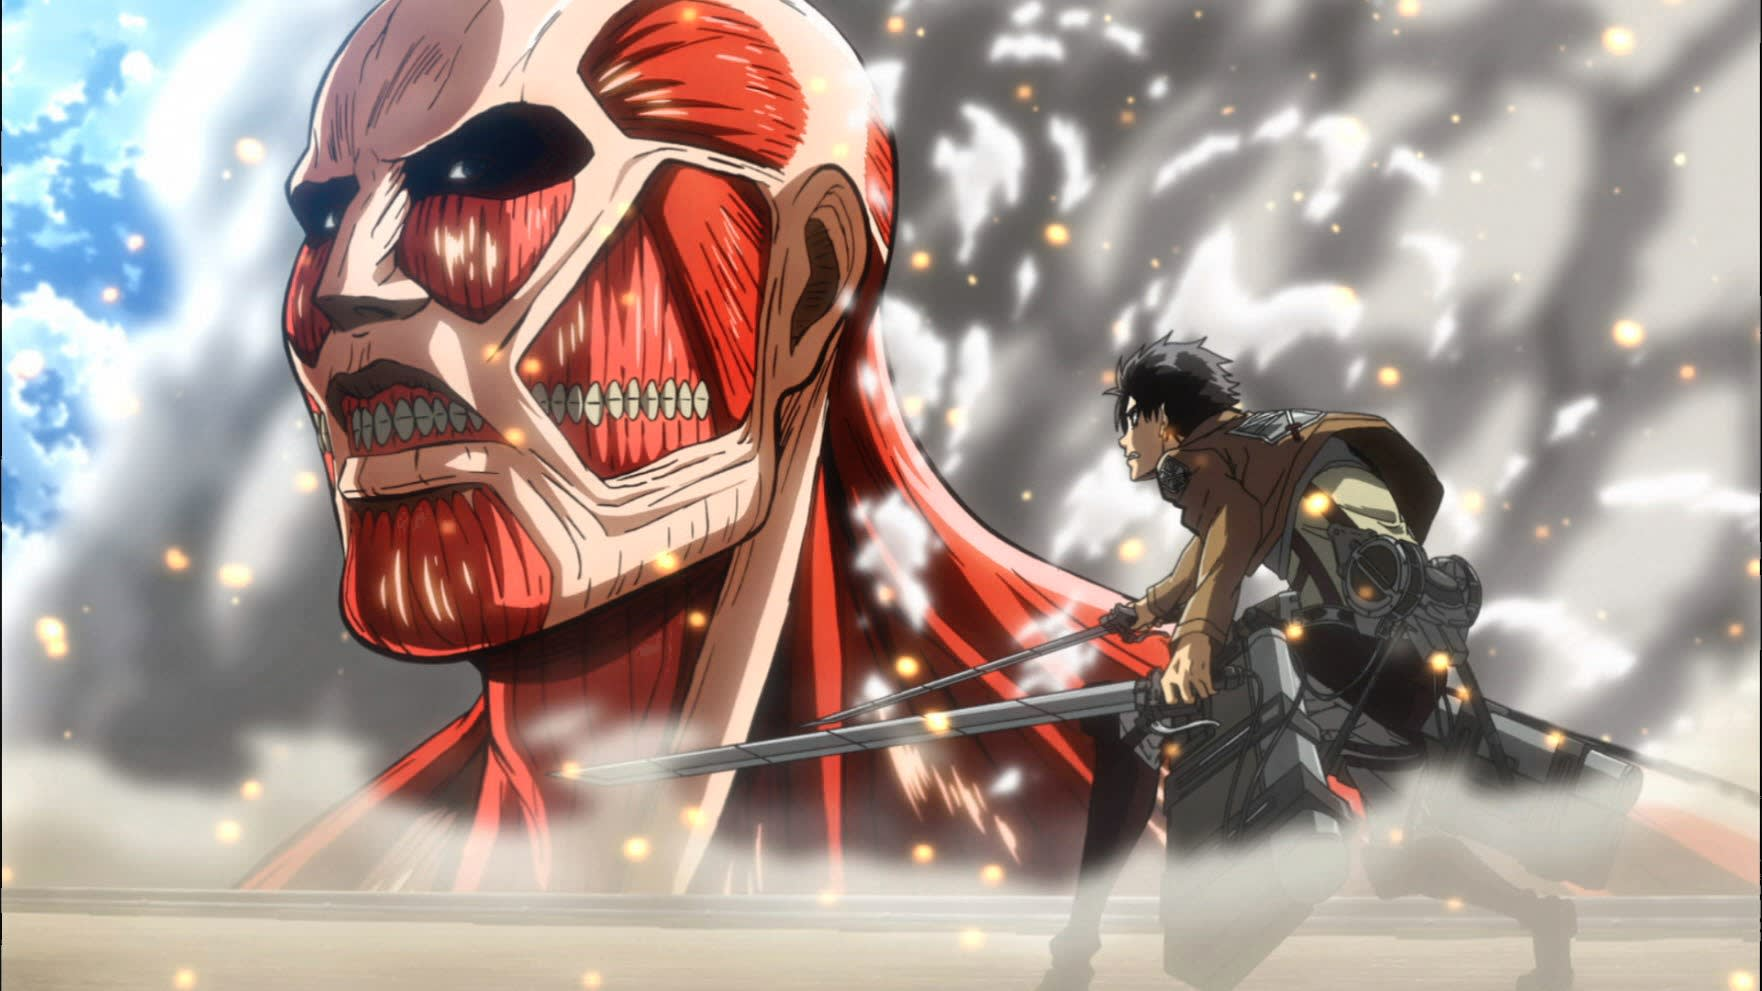 When is Attack on Titan season 4 releasing? Read to find ...